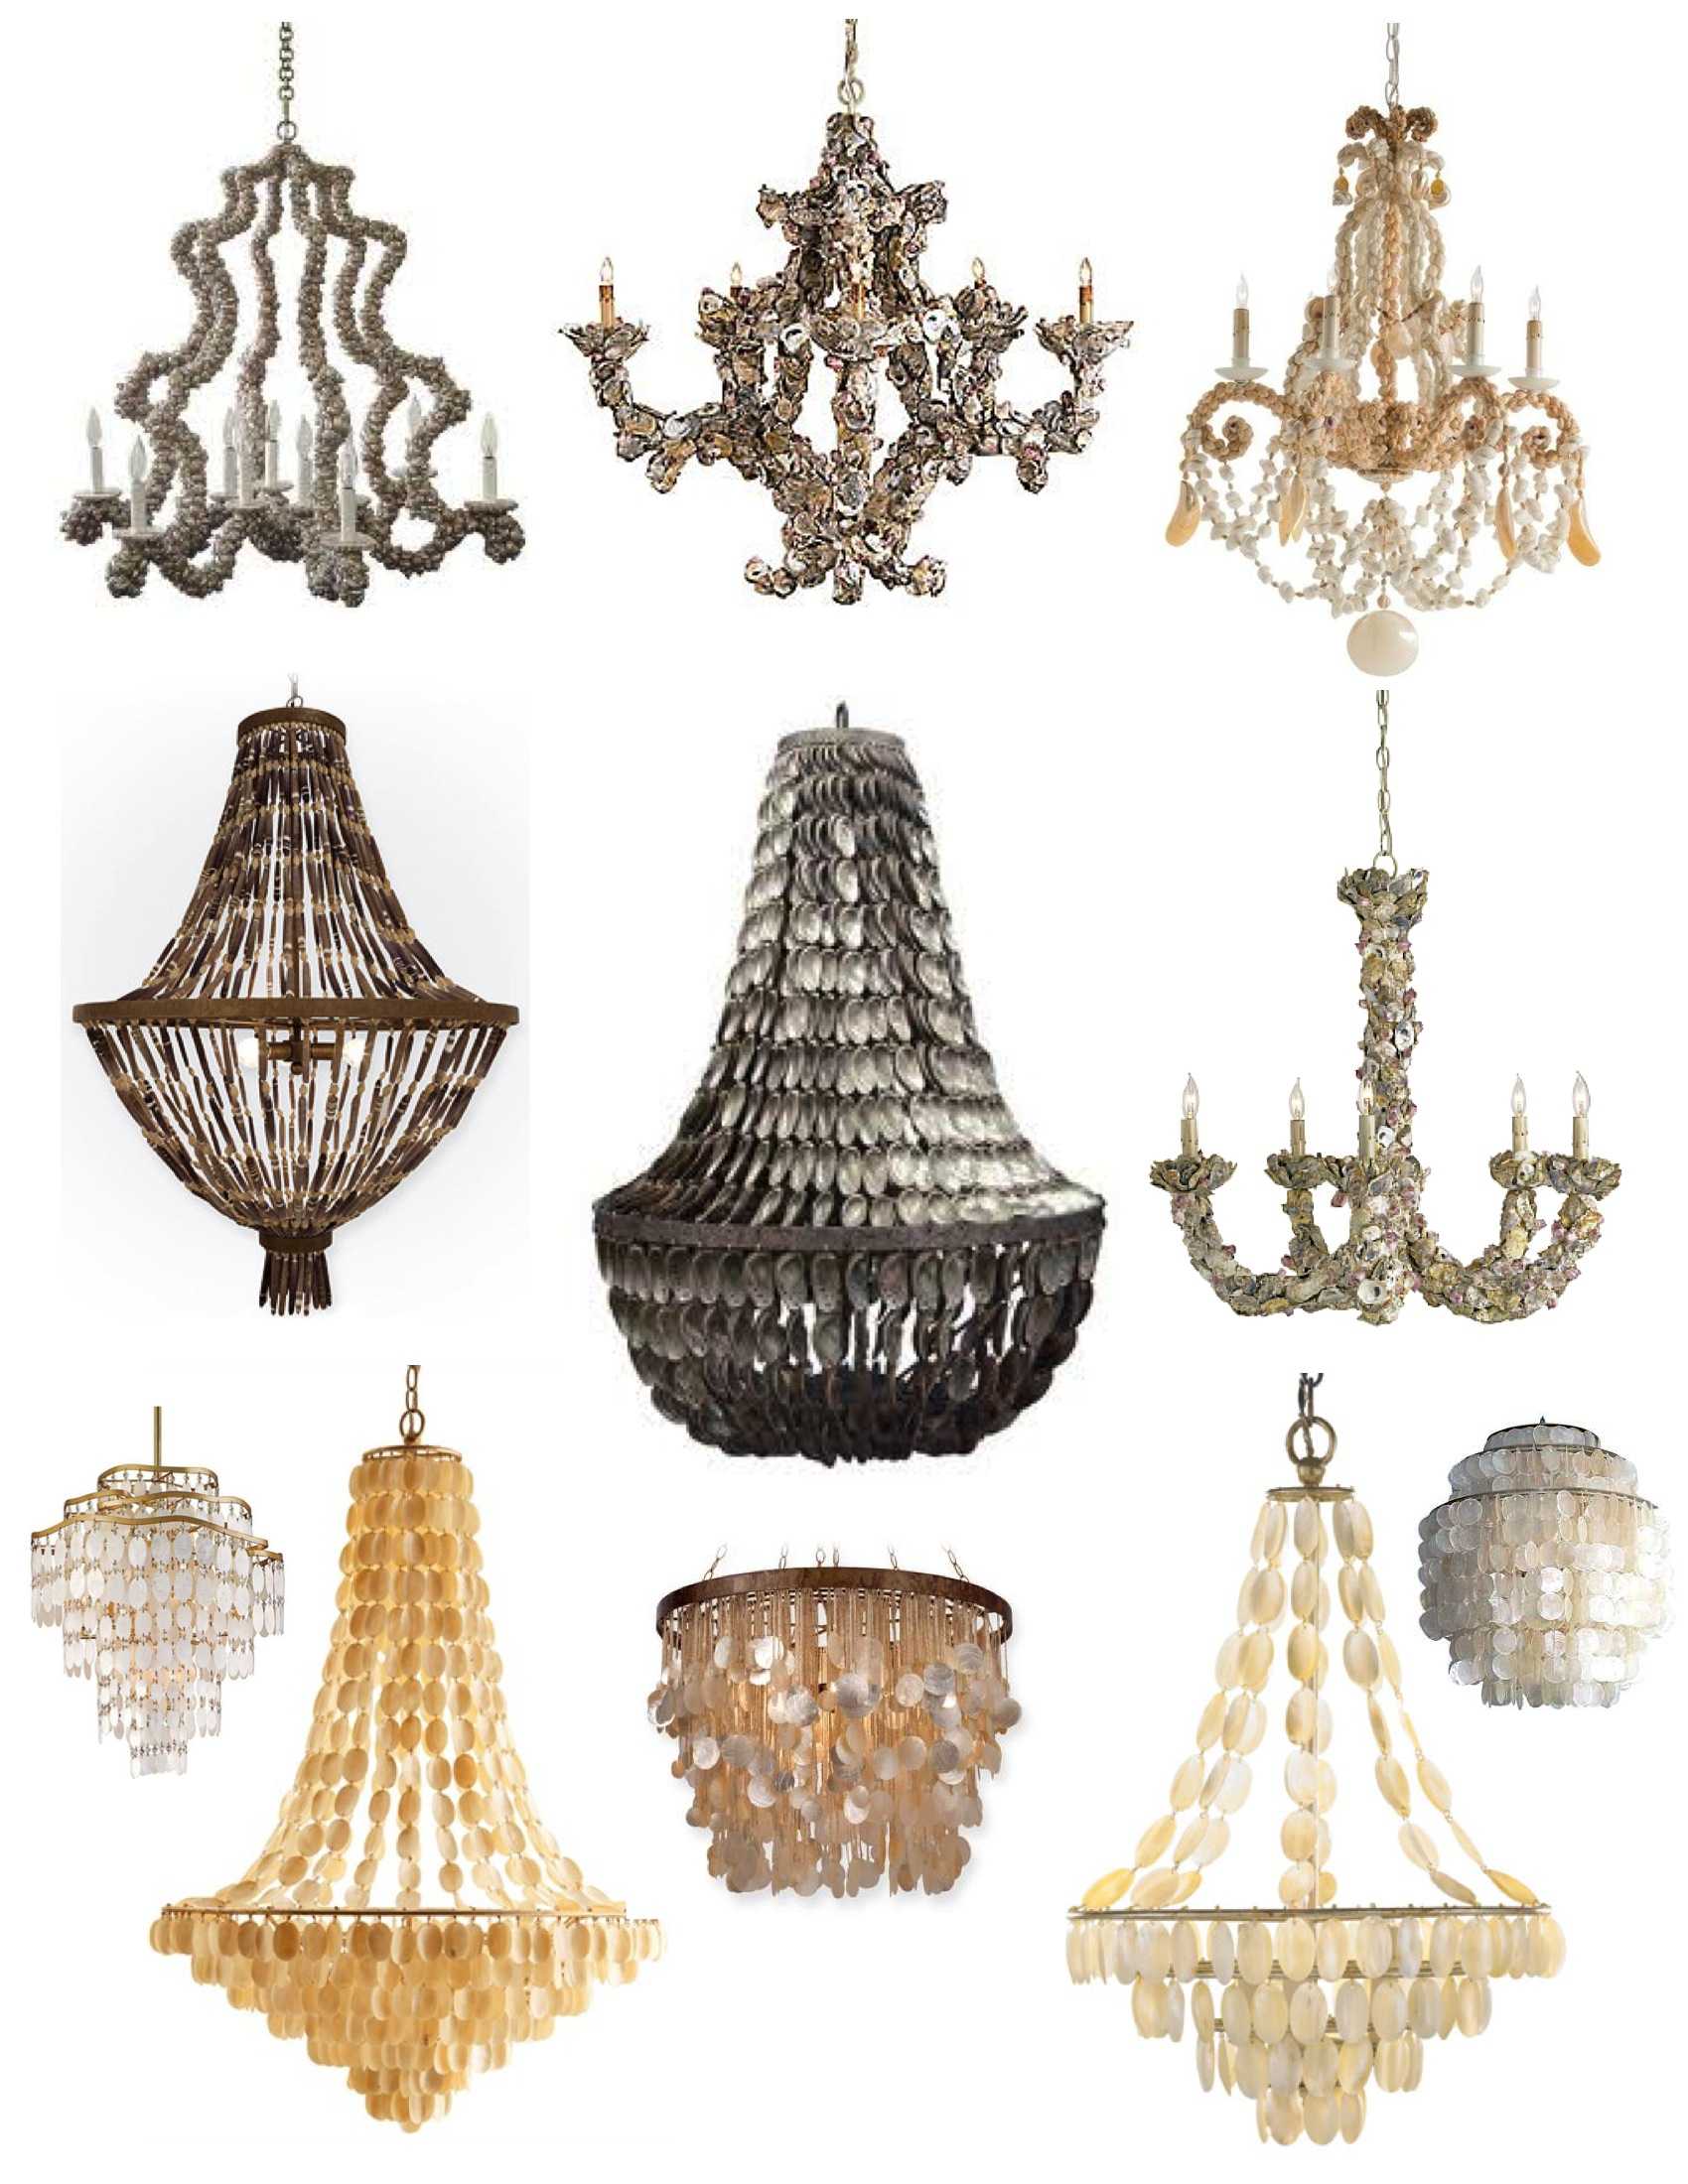 Oyster shell chandelier ideas homesfeed various designs of pendant chandelier s made from oyster shells aloadofball Gallery